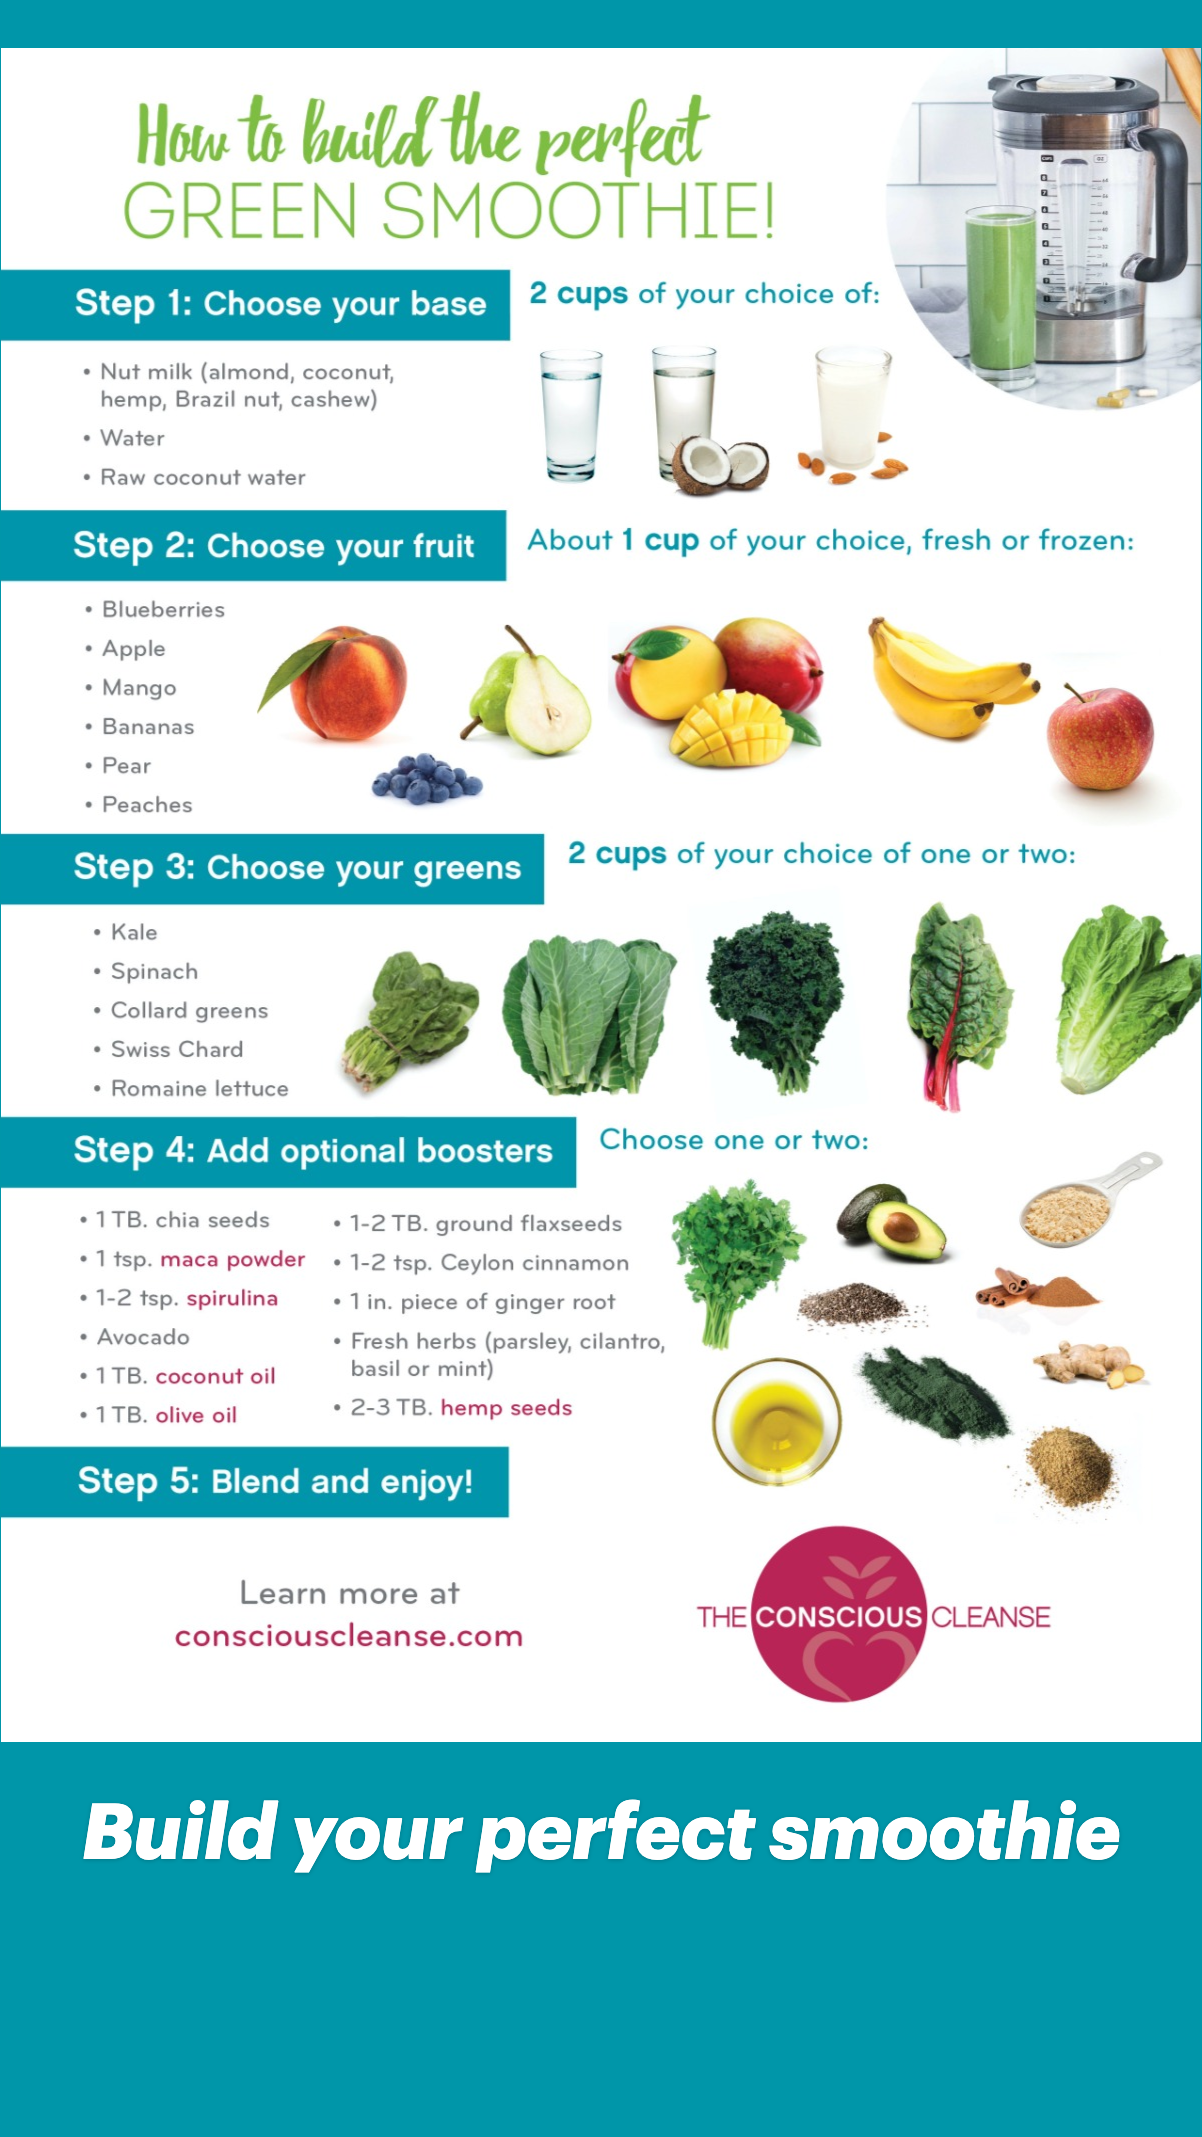 Build your perfect smoothie - Conscious Cleanse